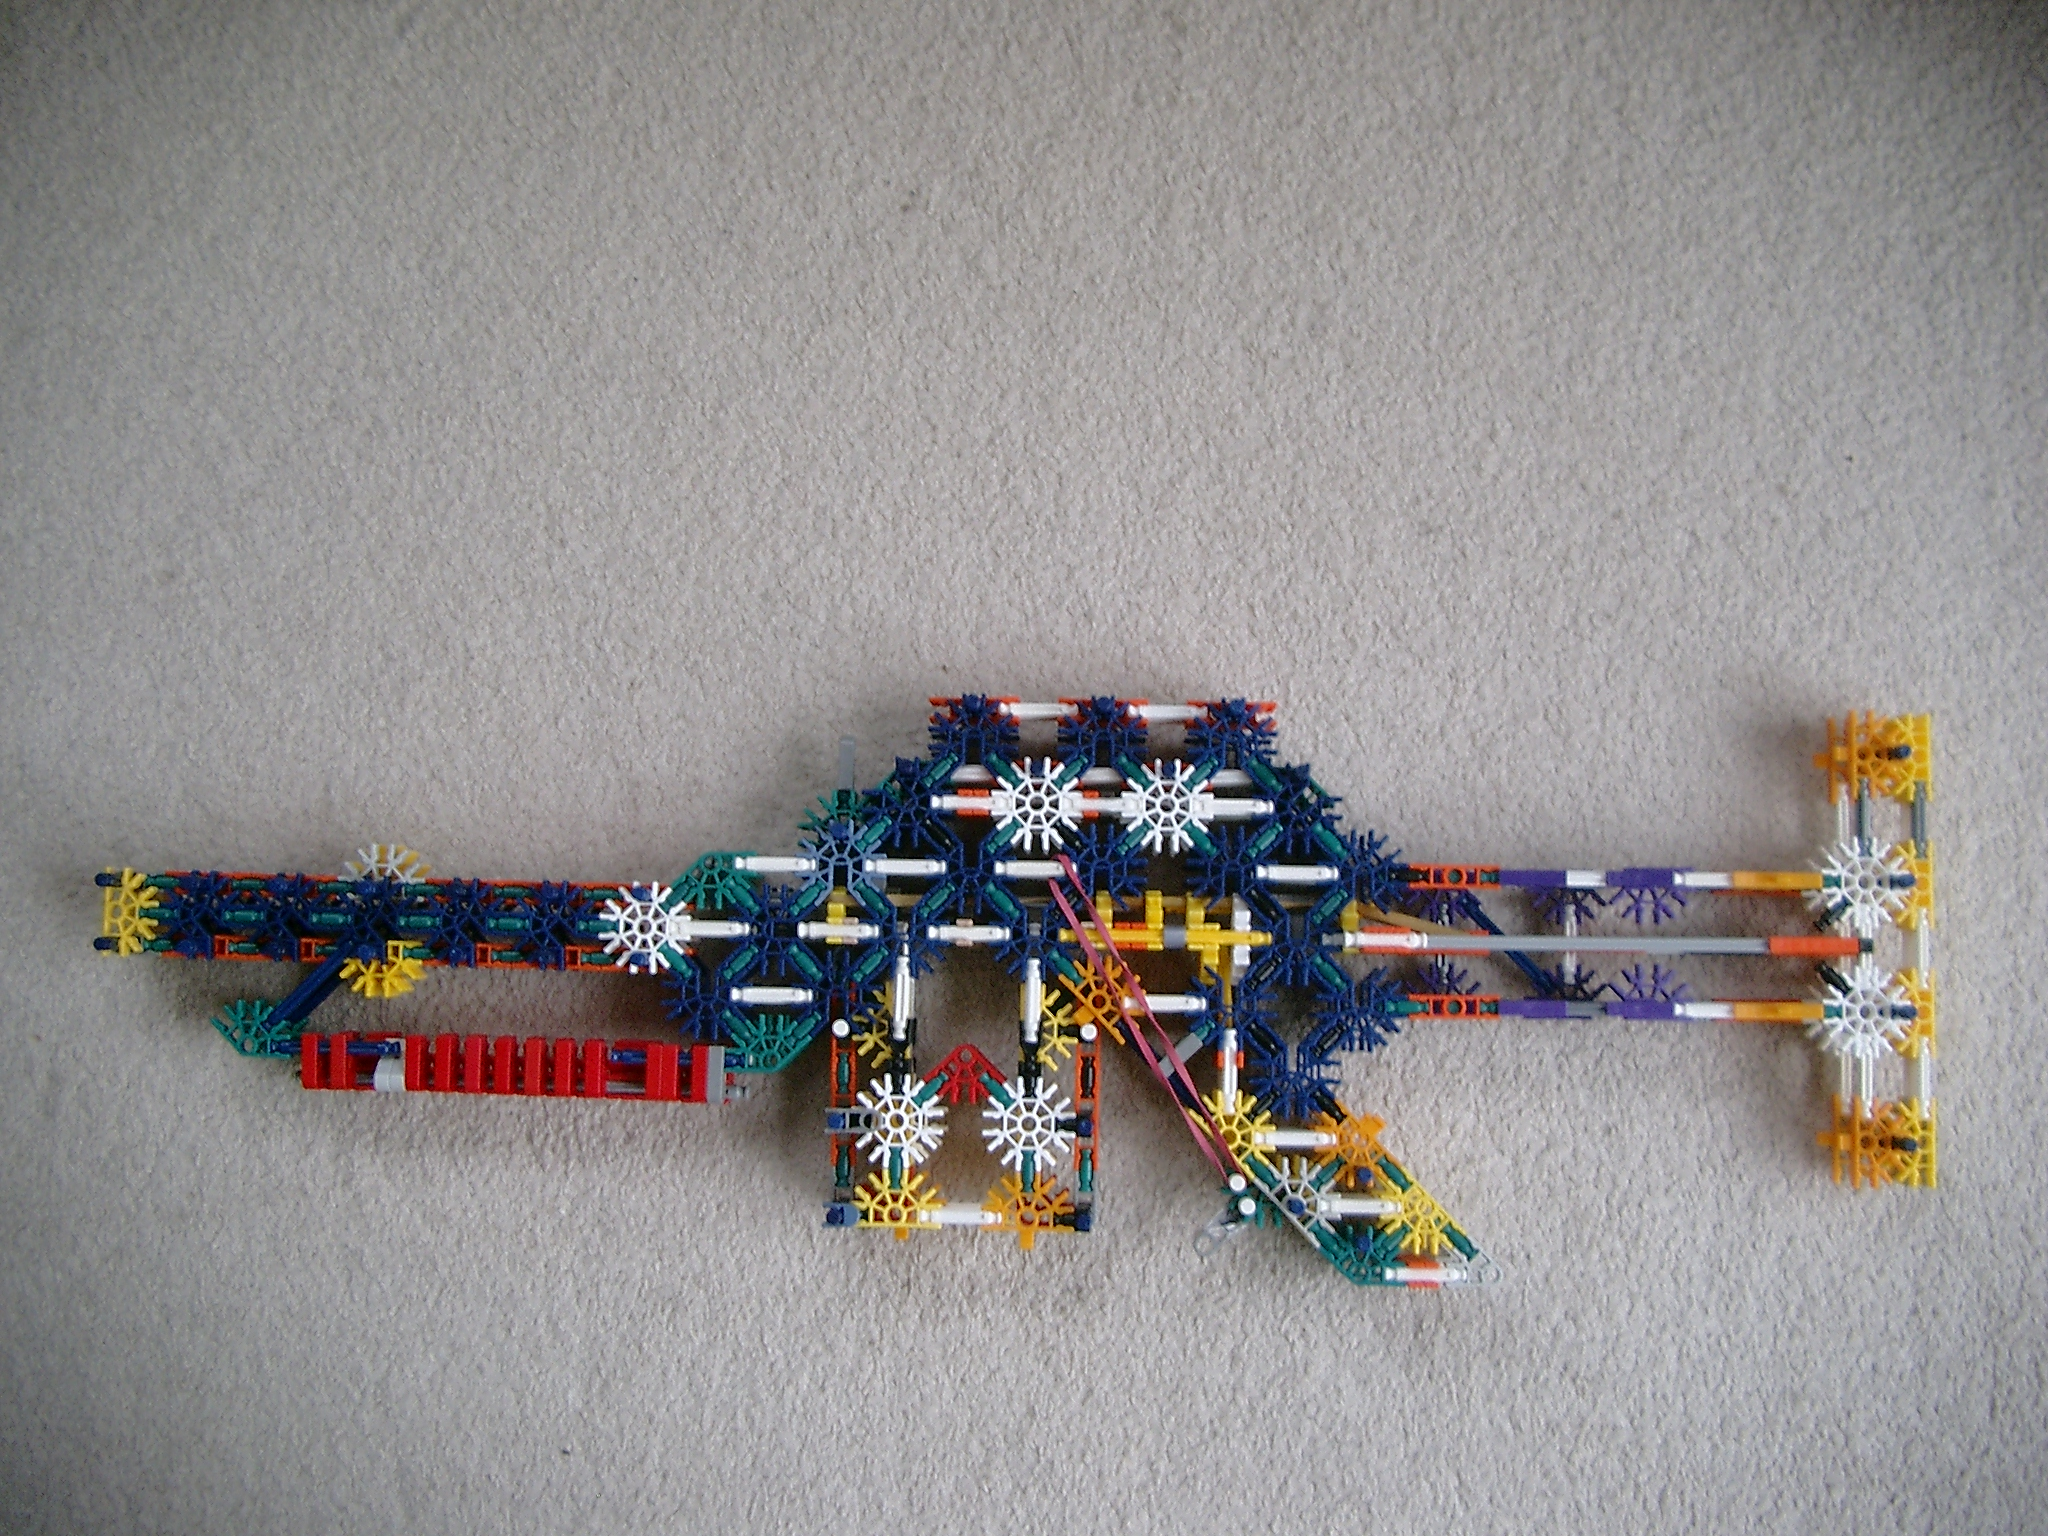 The storm 220 V1.7 knex bolt action rifle.